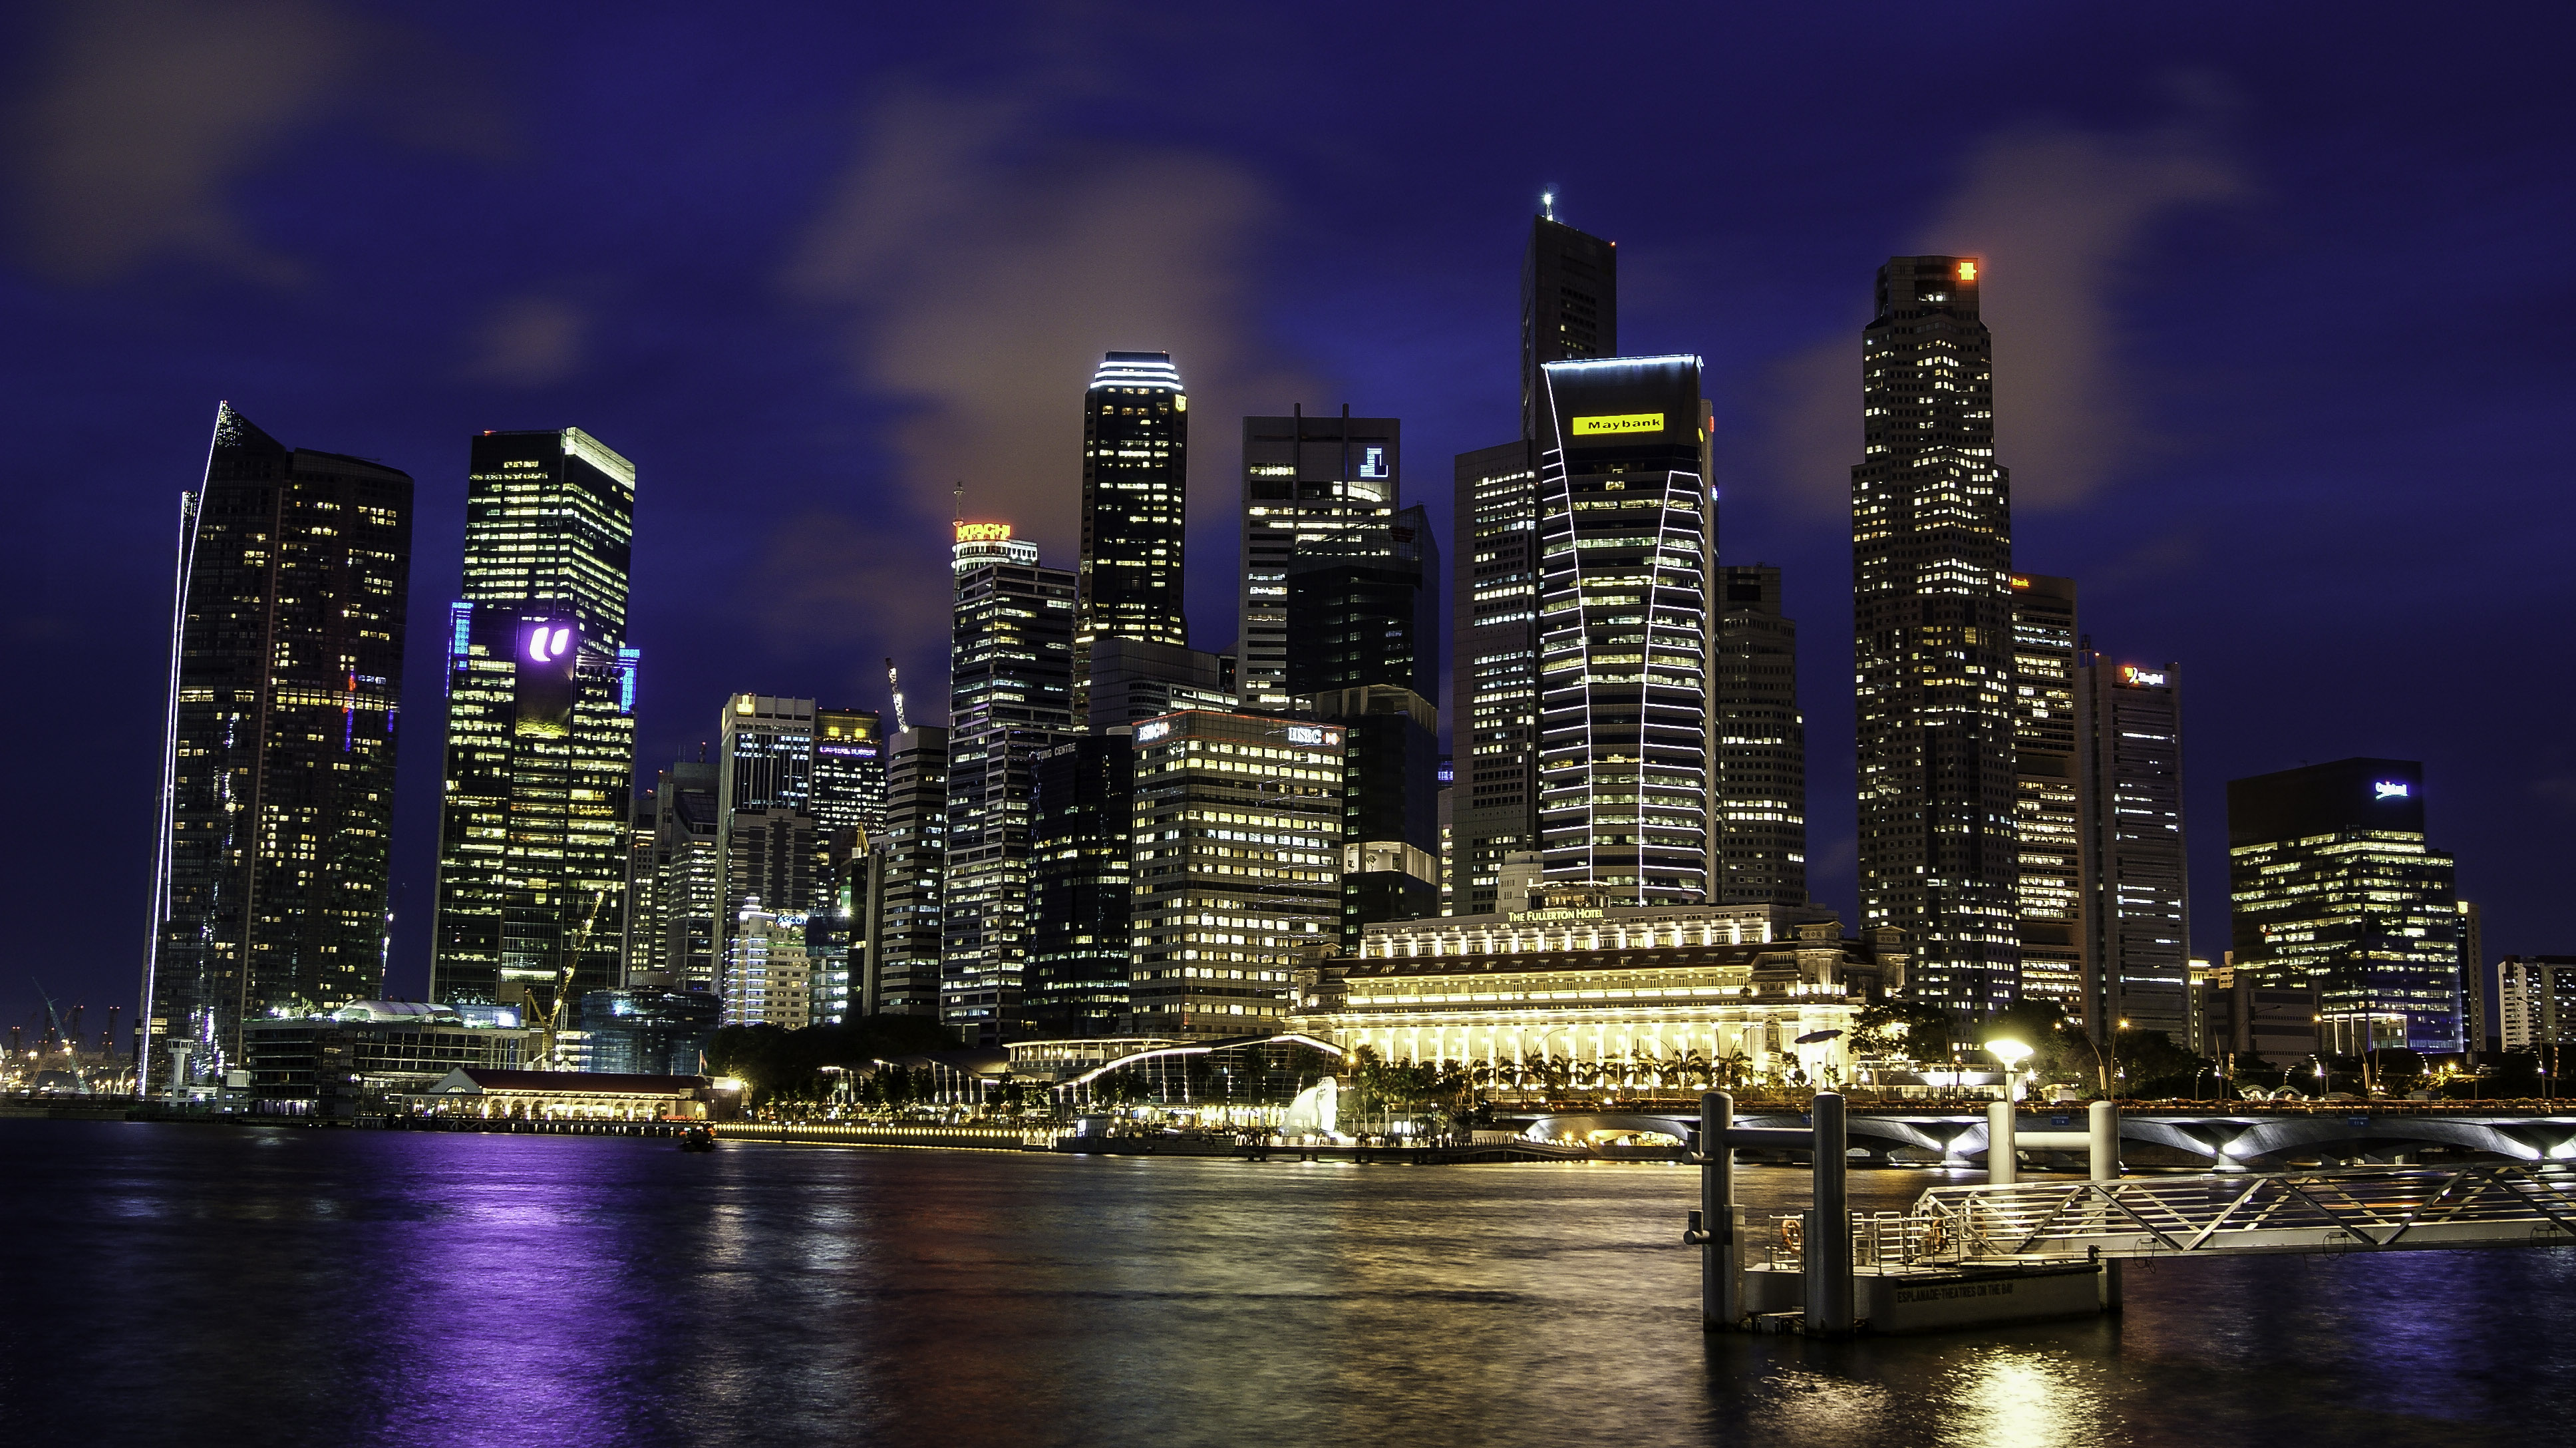 Good Evening Hd Wallpaper Singapore Skyline With Dark Blue Sky In The Background At